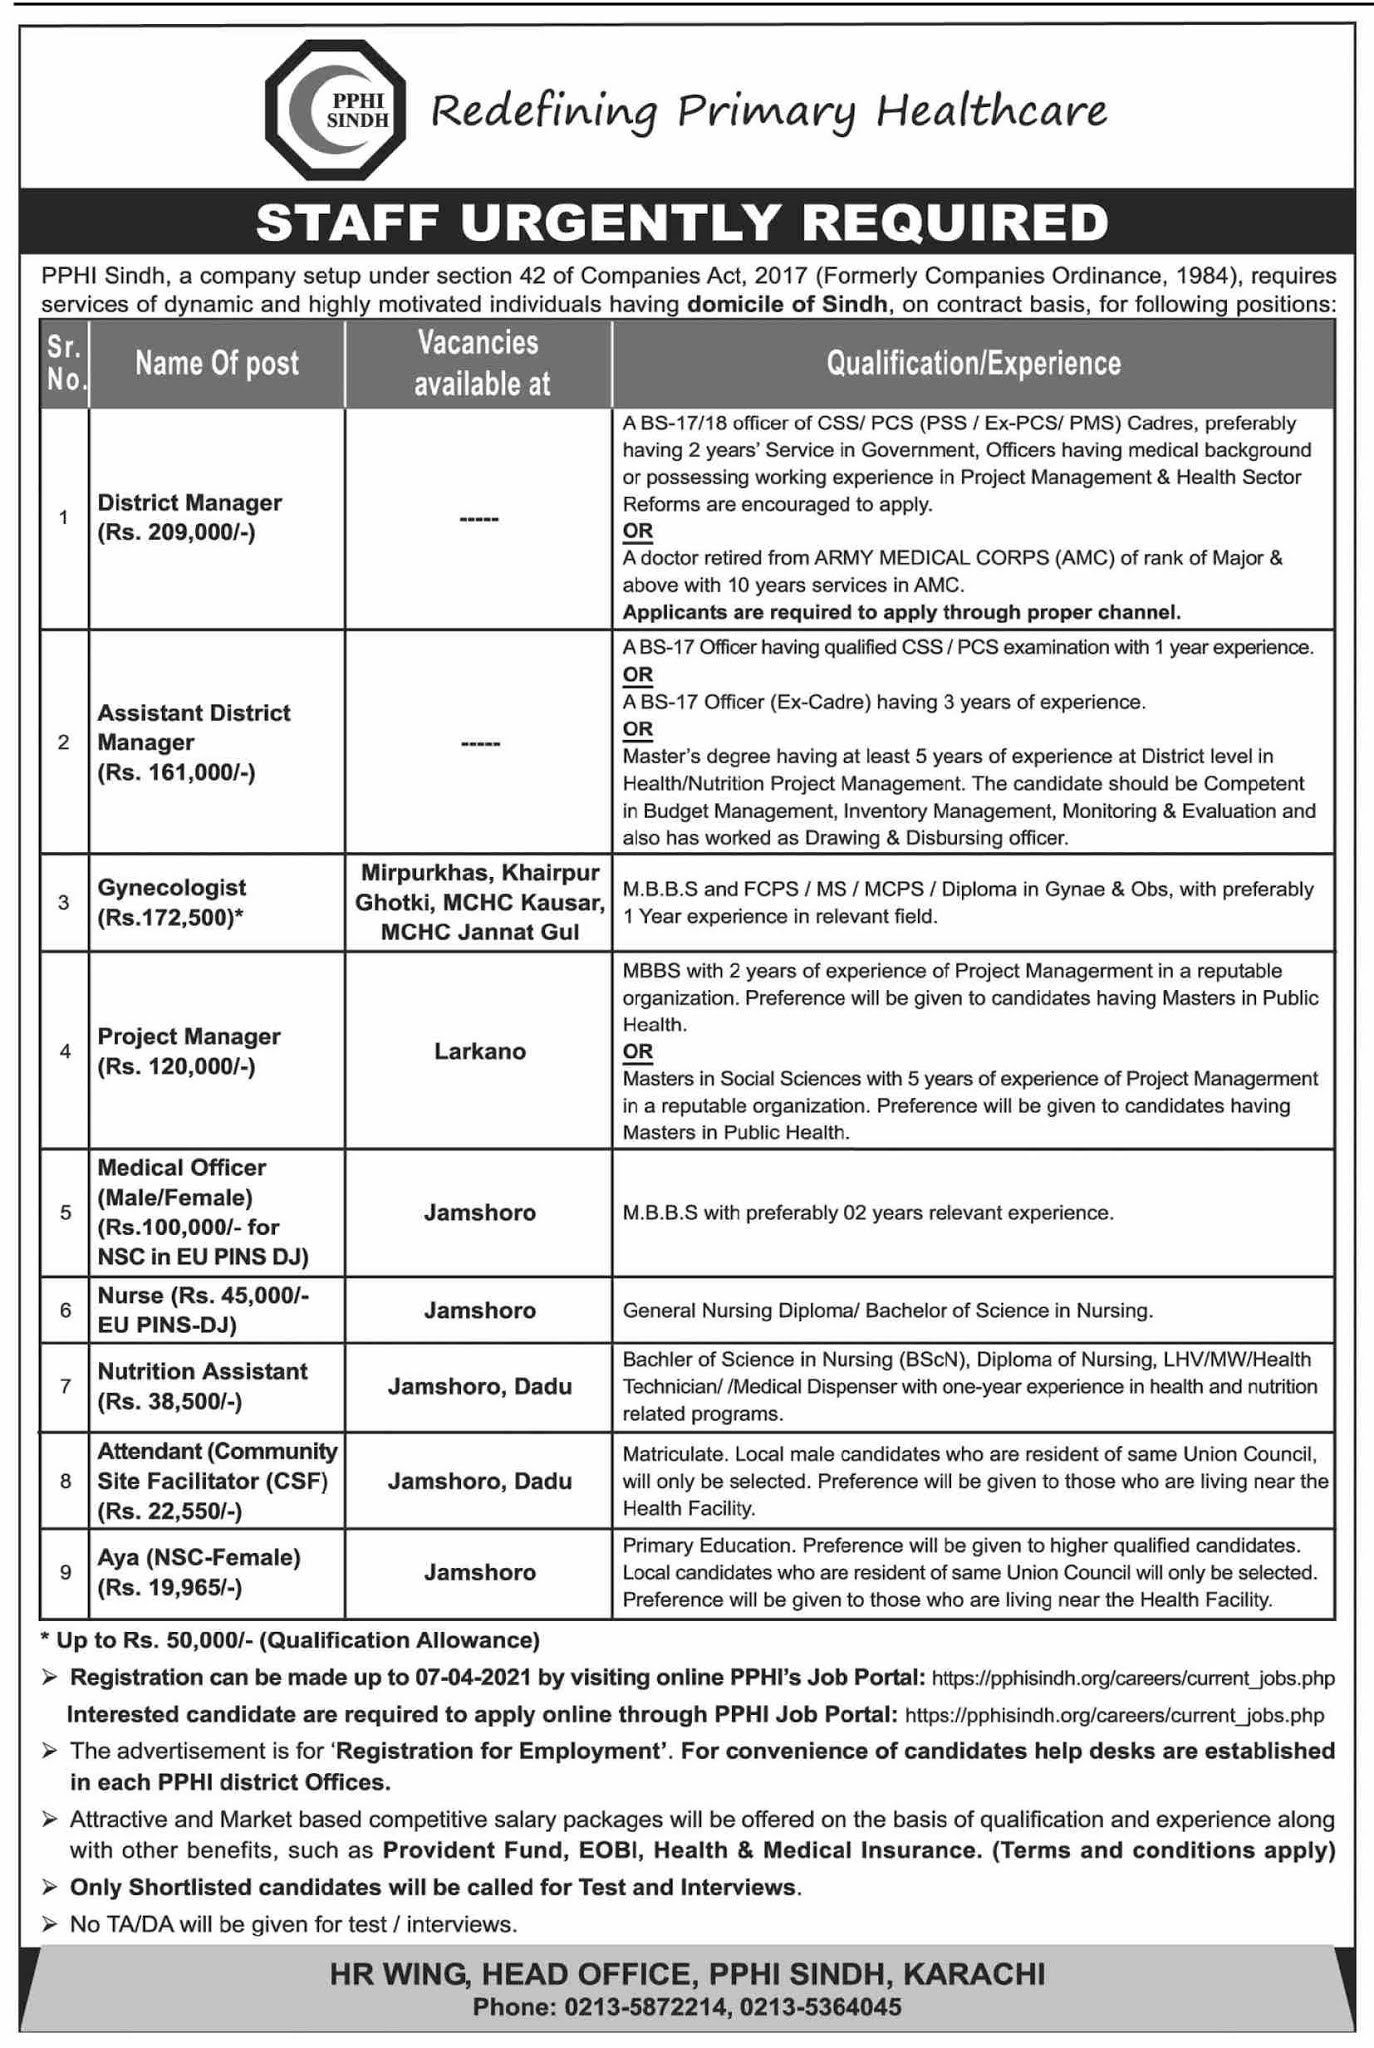 PPHI Latest Jobs 2021 - PPHI New Jobs 2021 - Peoples Primary Healthcare Initiative Jobs 2021 - Online PPHI Job Portal Application Form - pphisindh.org/careers/current_jobs.php